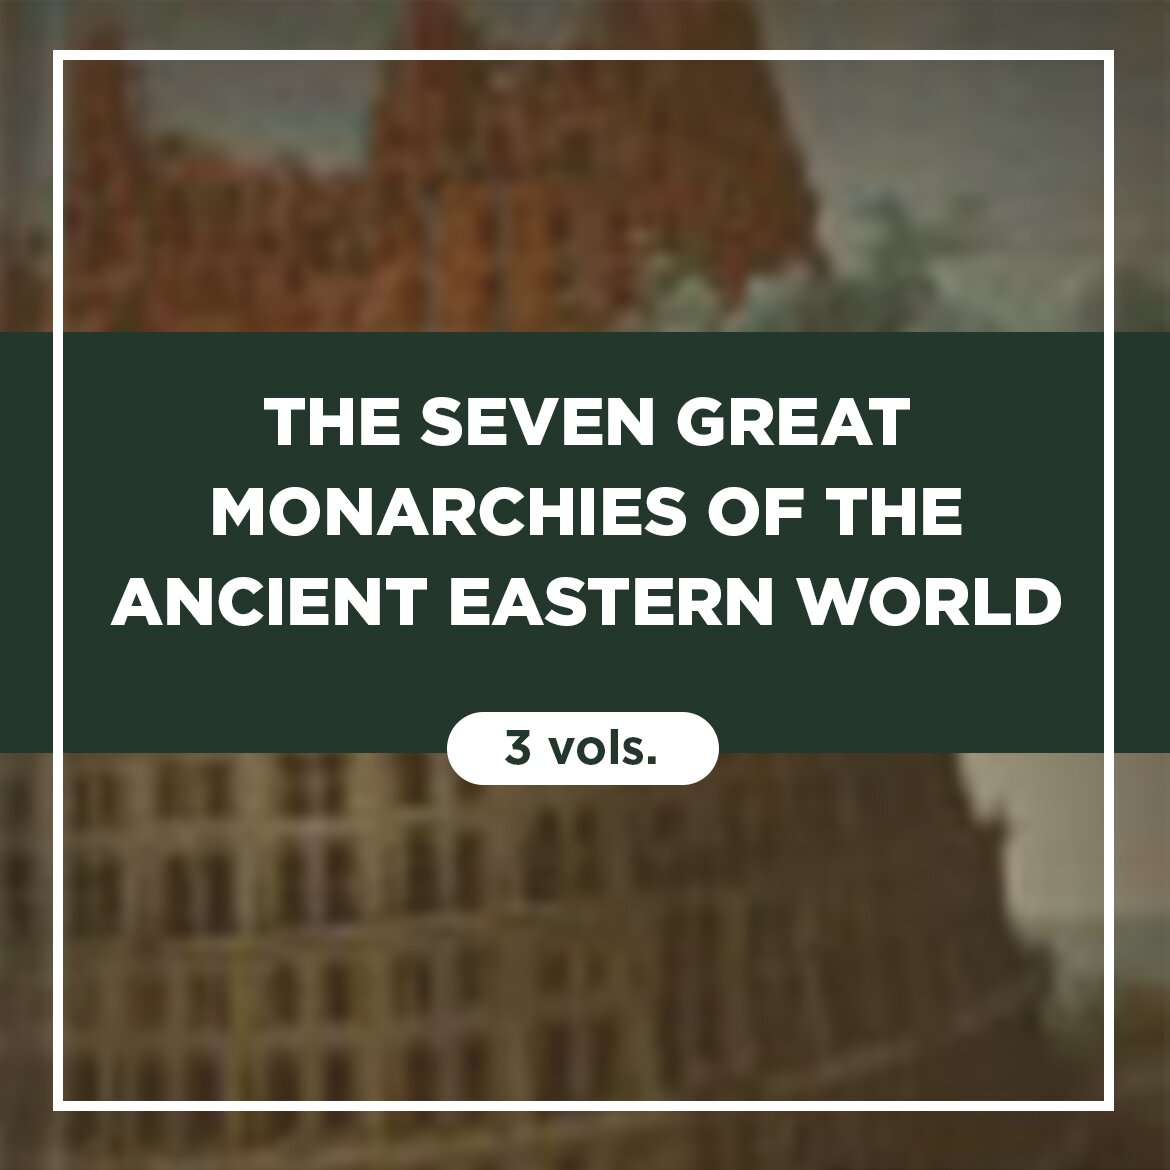 The Seven Great Monarchies of the Ancient Eastern World (3 vols.)